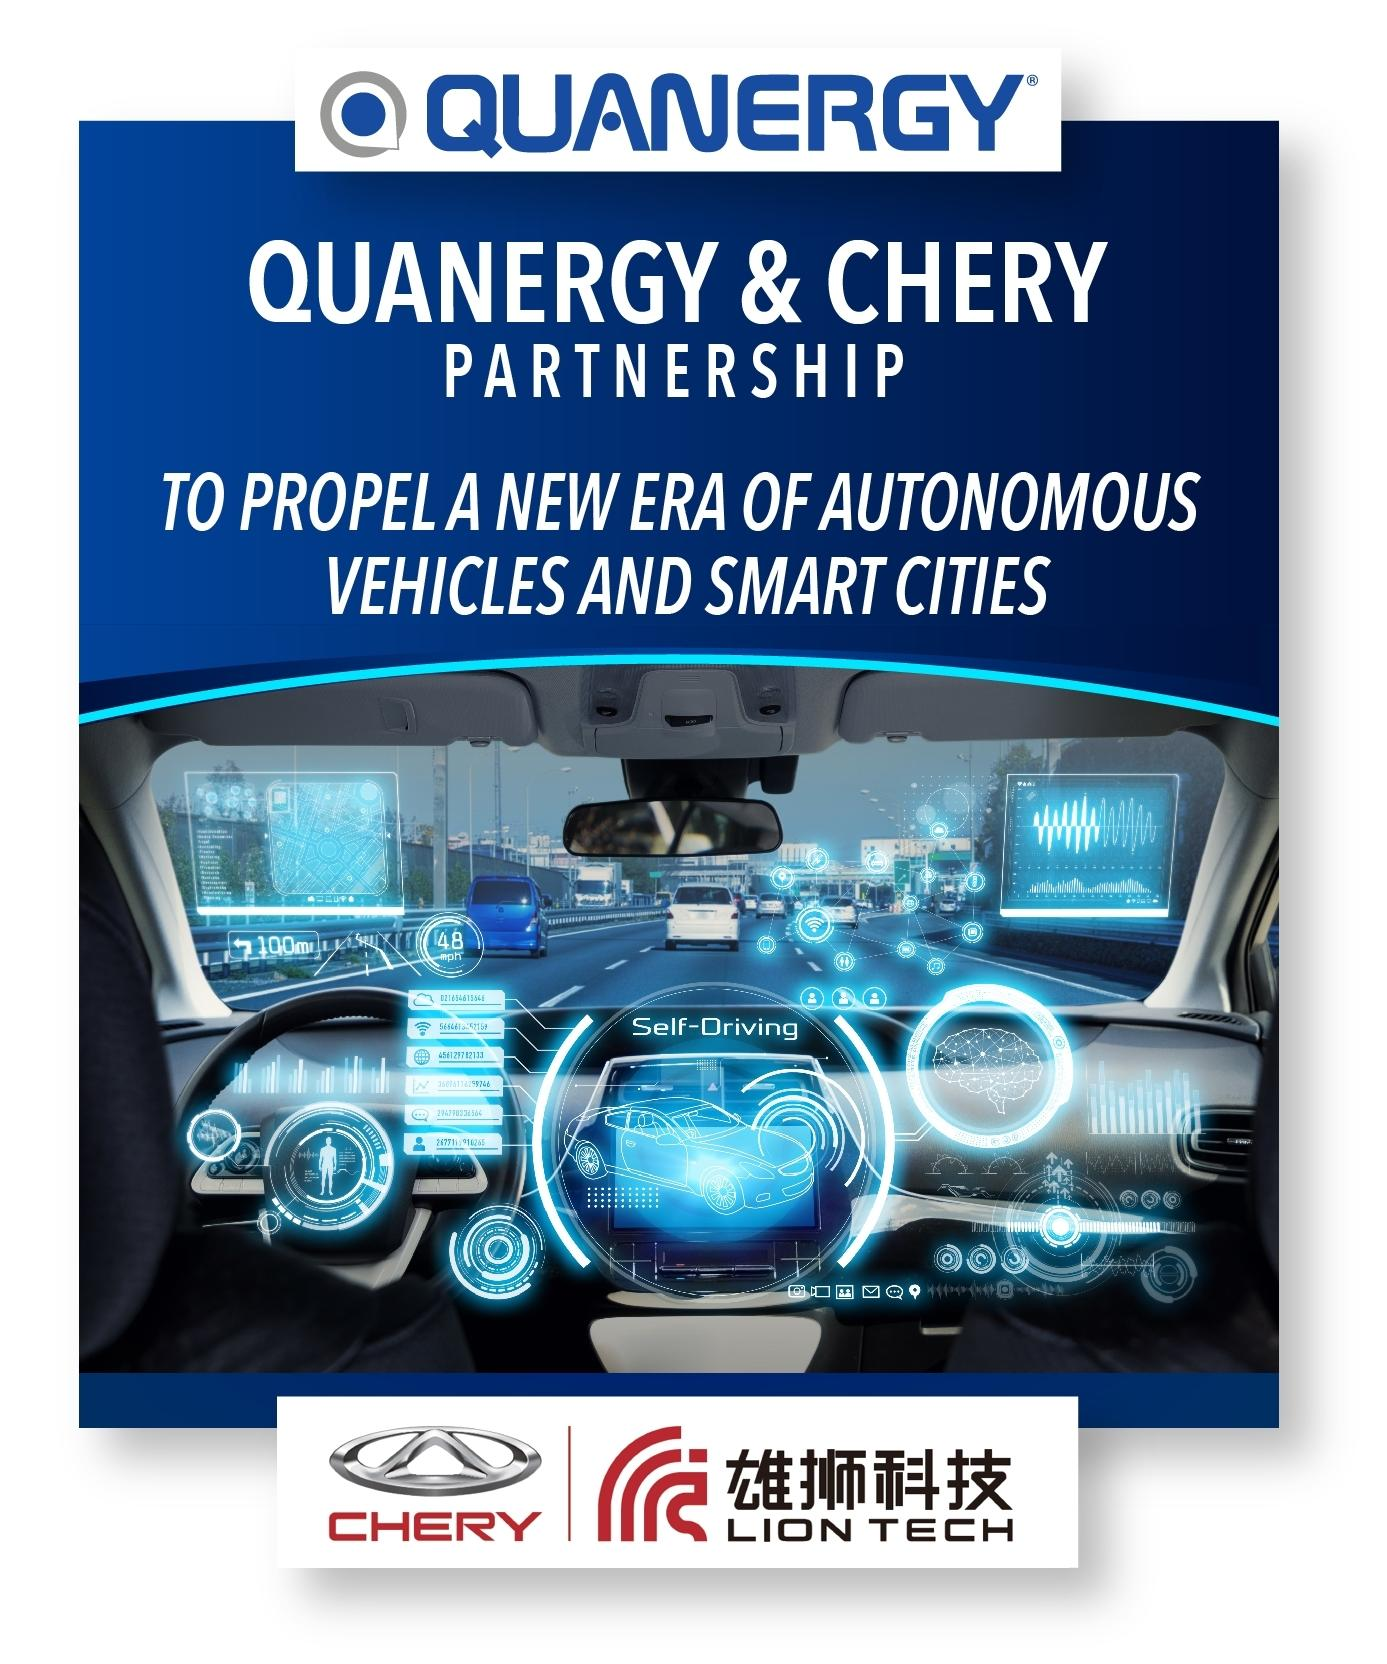 Quanergy and Chery Established Partnership to Propel a New Era of Autonomous Vehicles and Smart Cities